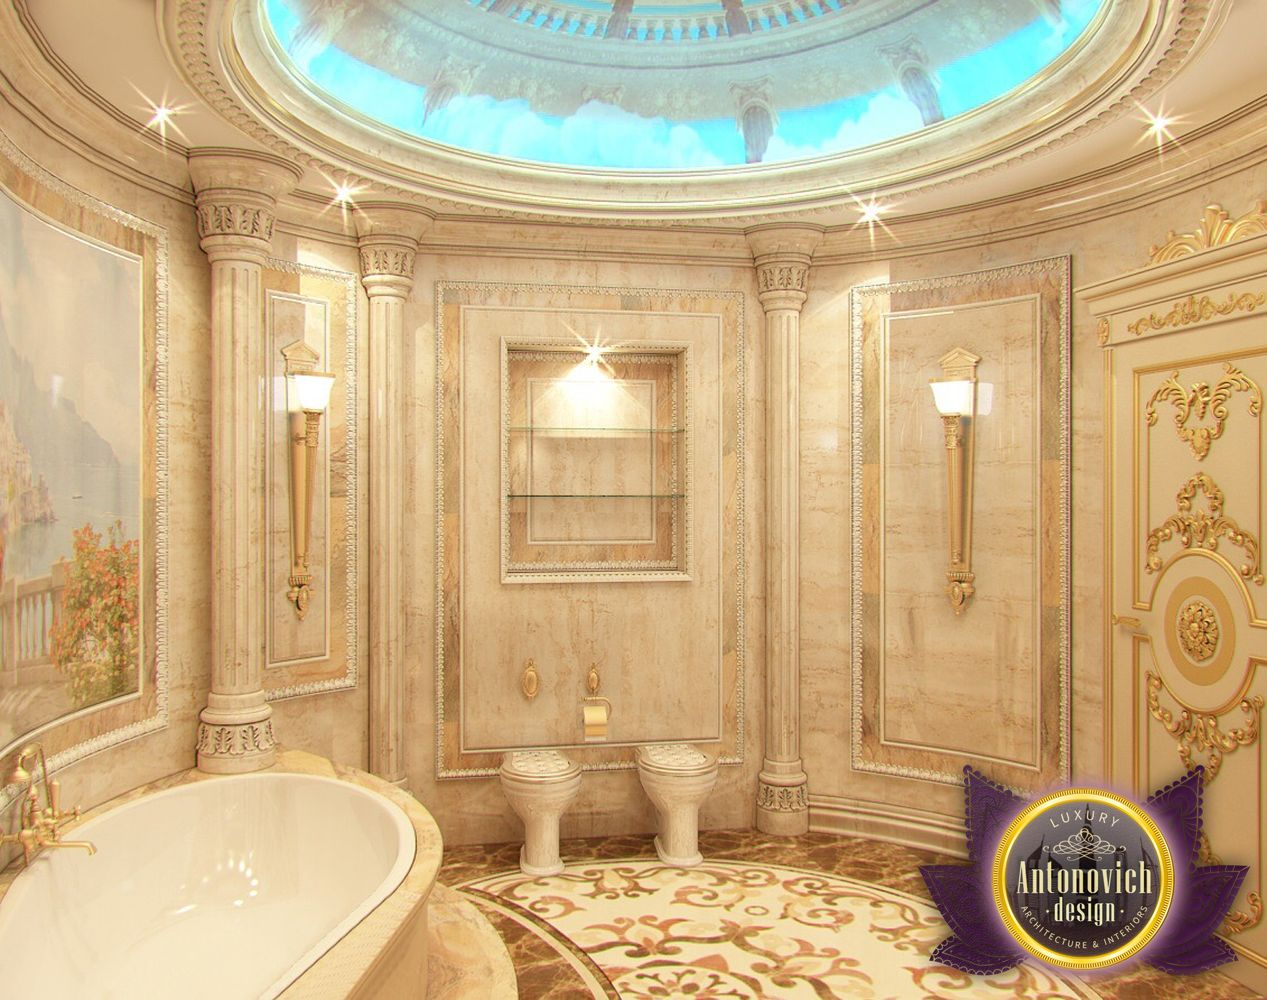 nigeiradesign: Bathroom designs by Luxury Antonovich Design